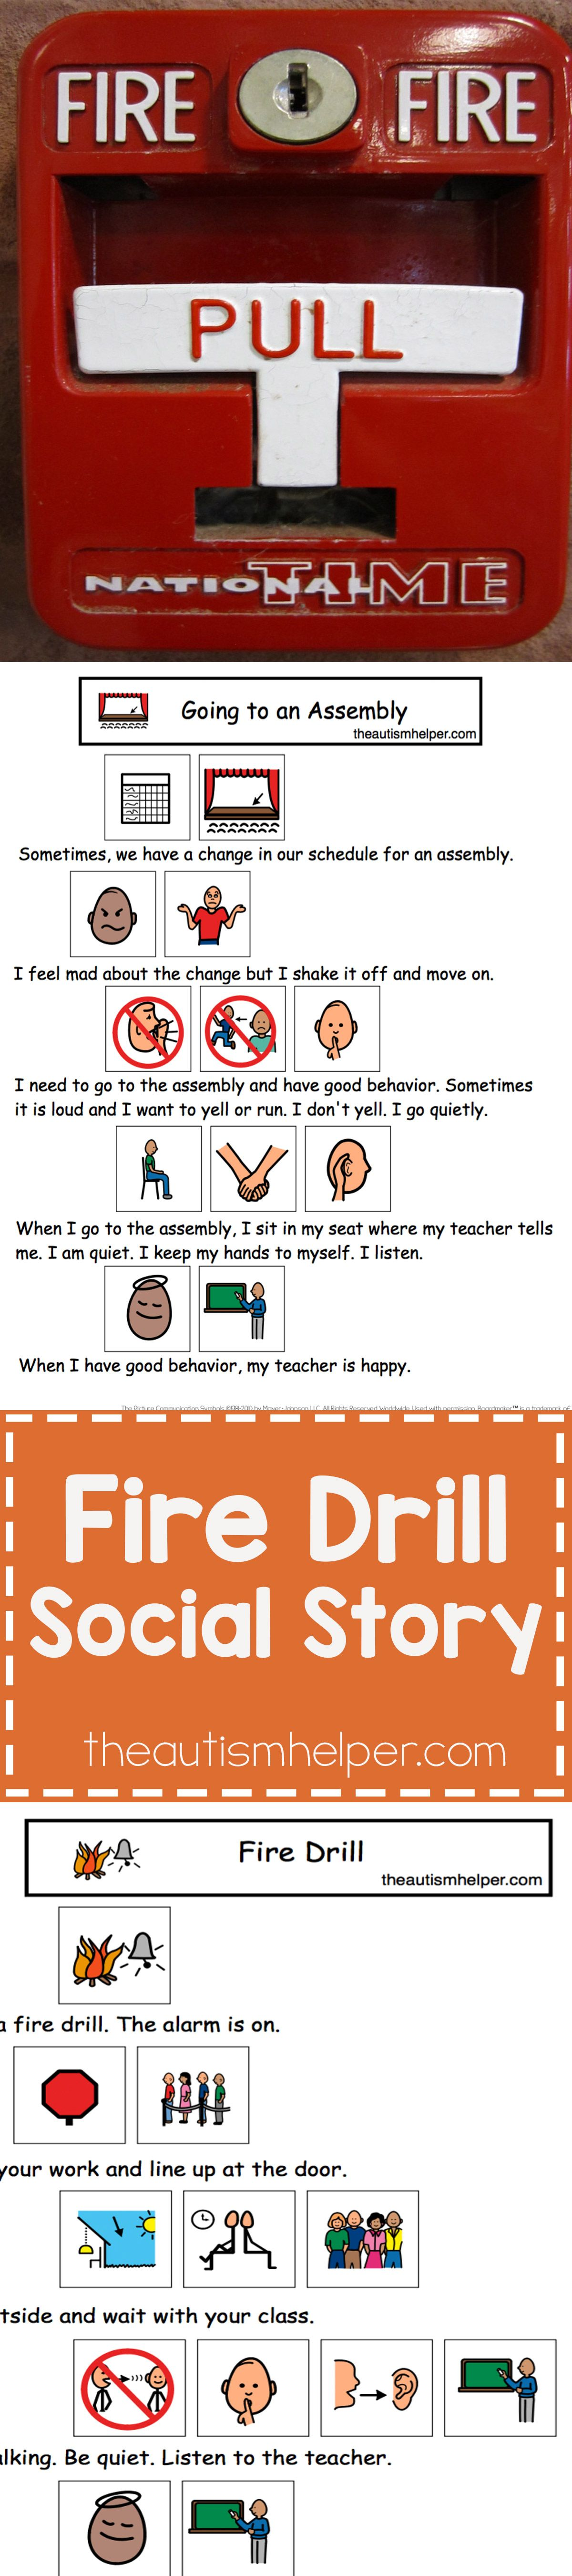 Fire Drill Social Story And More